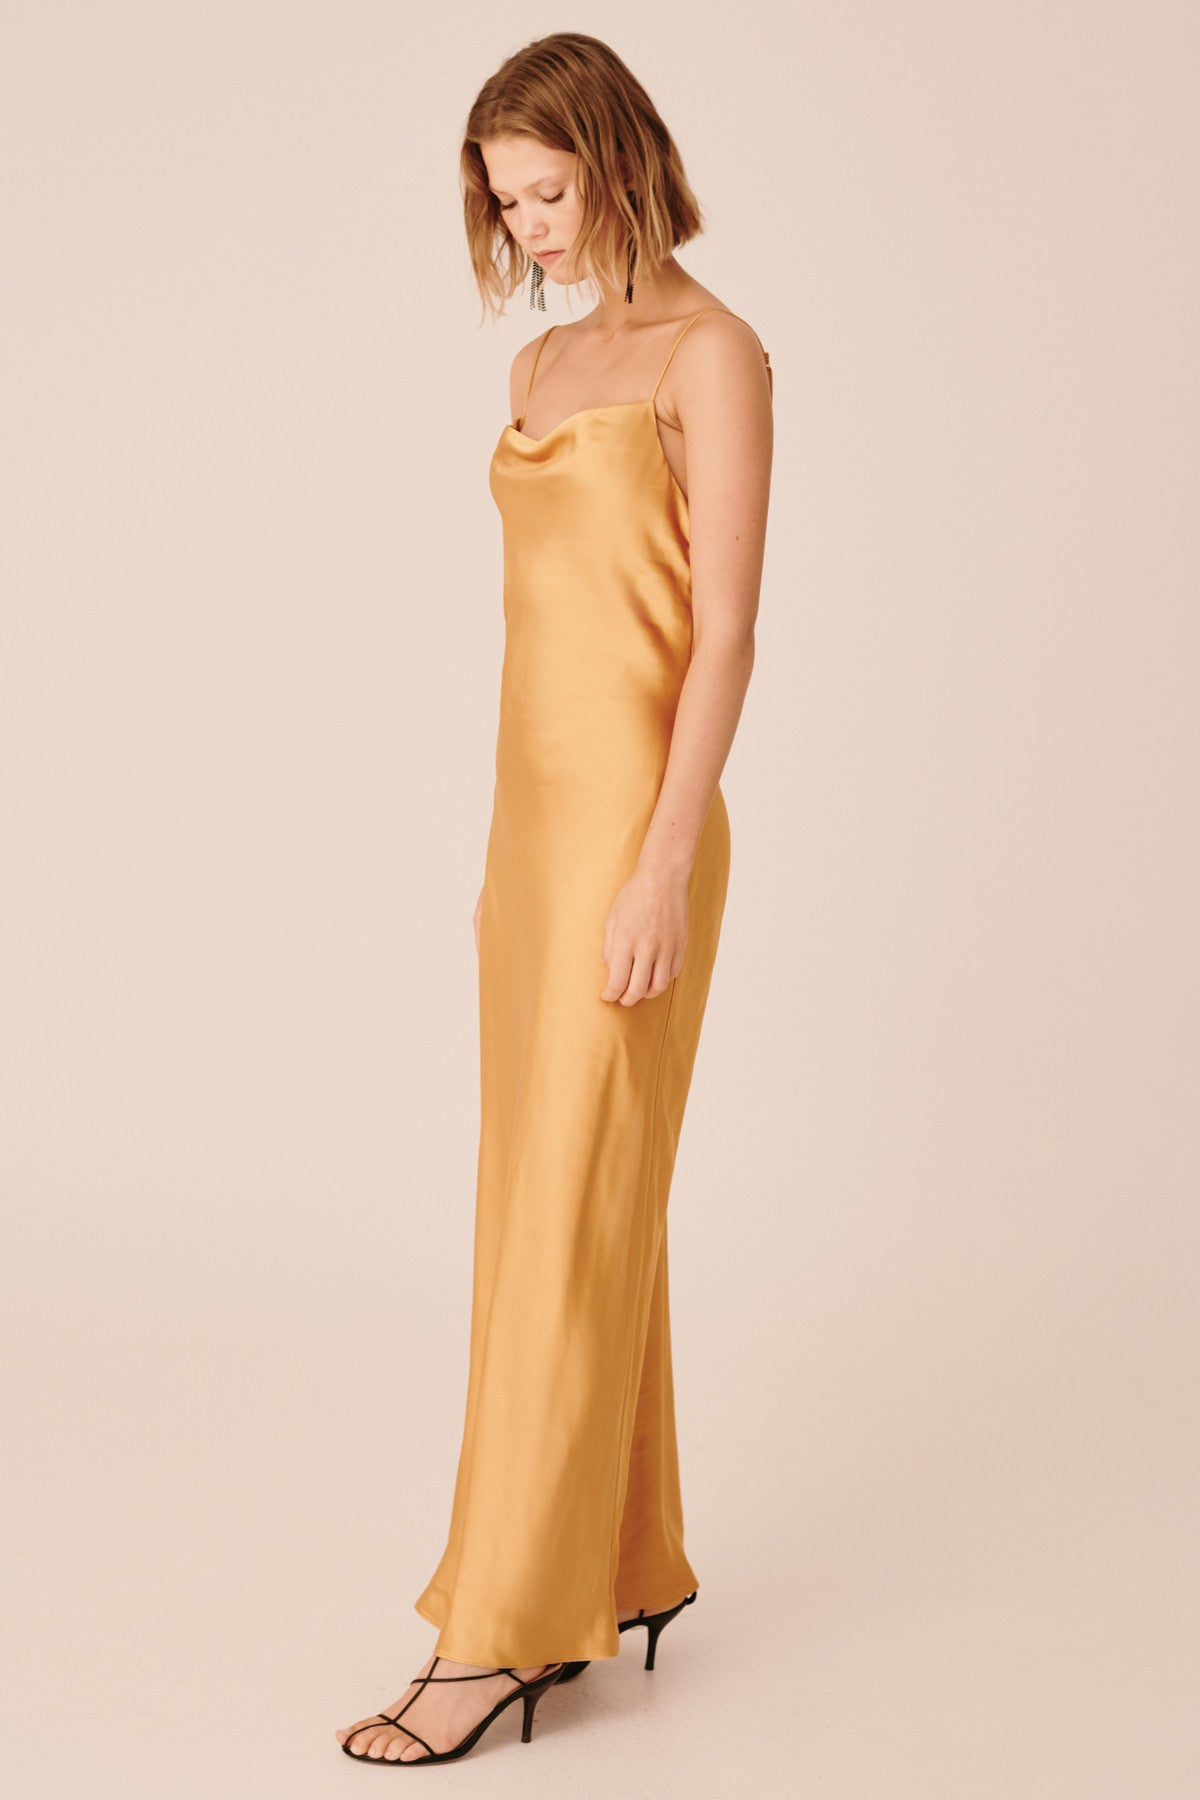 POLARISED GOWN mustard